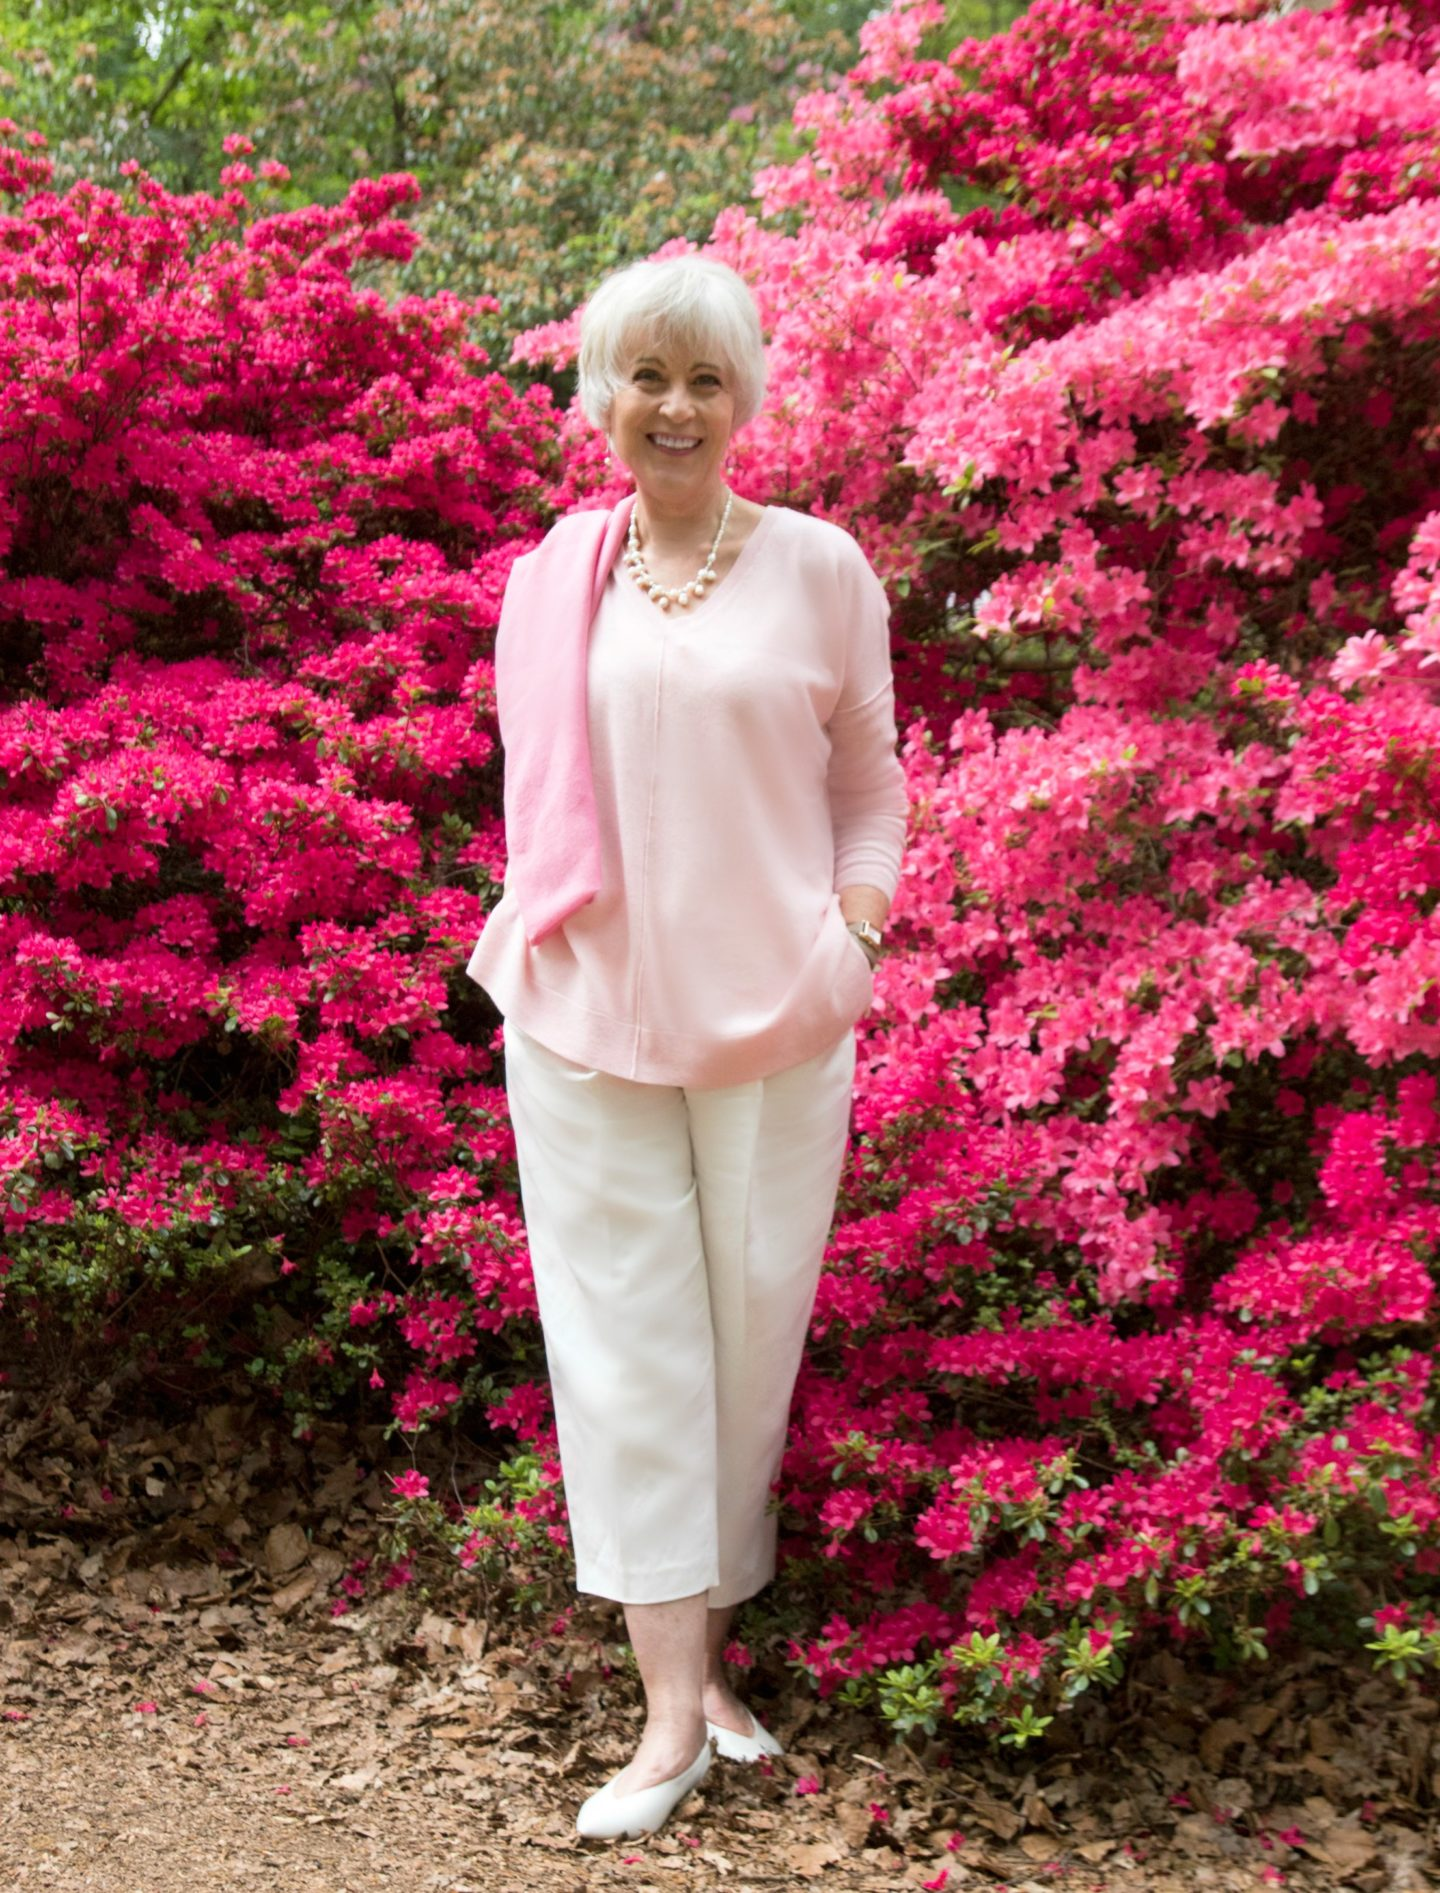 Pink sweater with azaleas